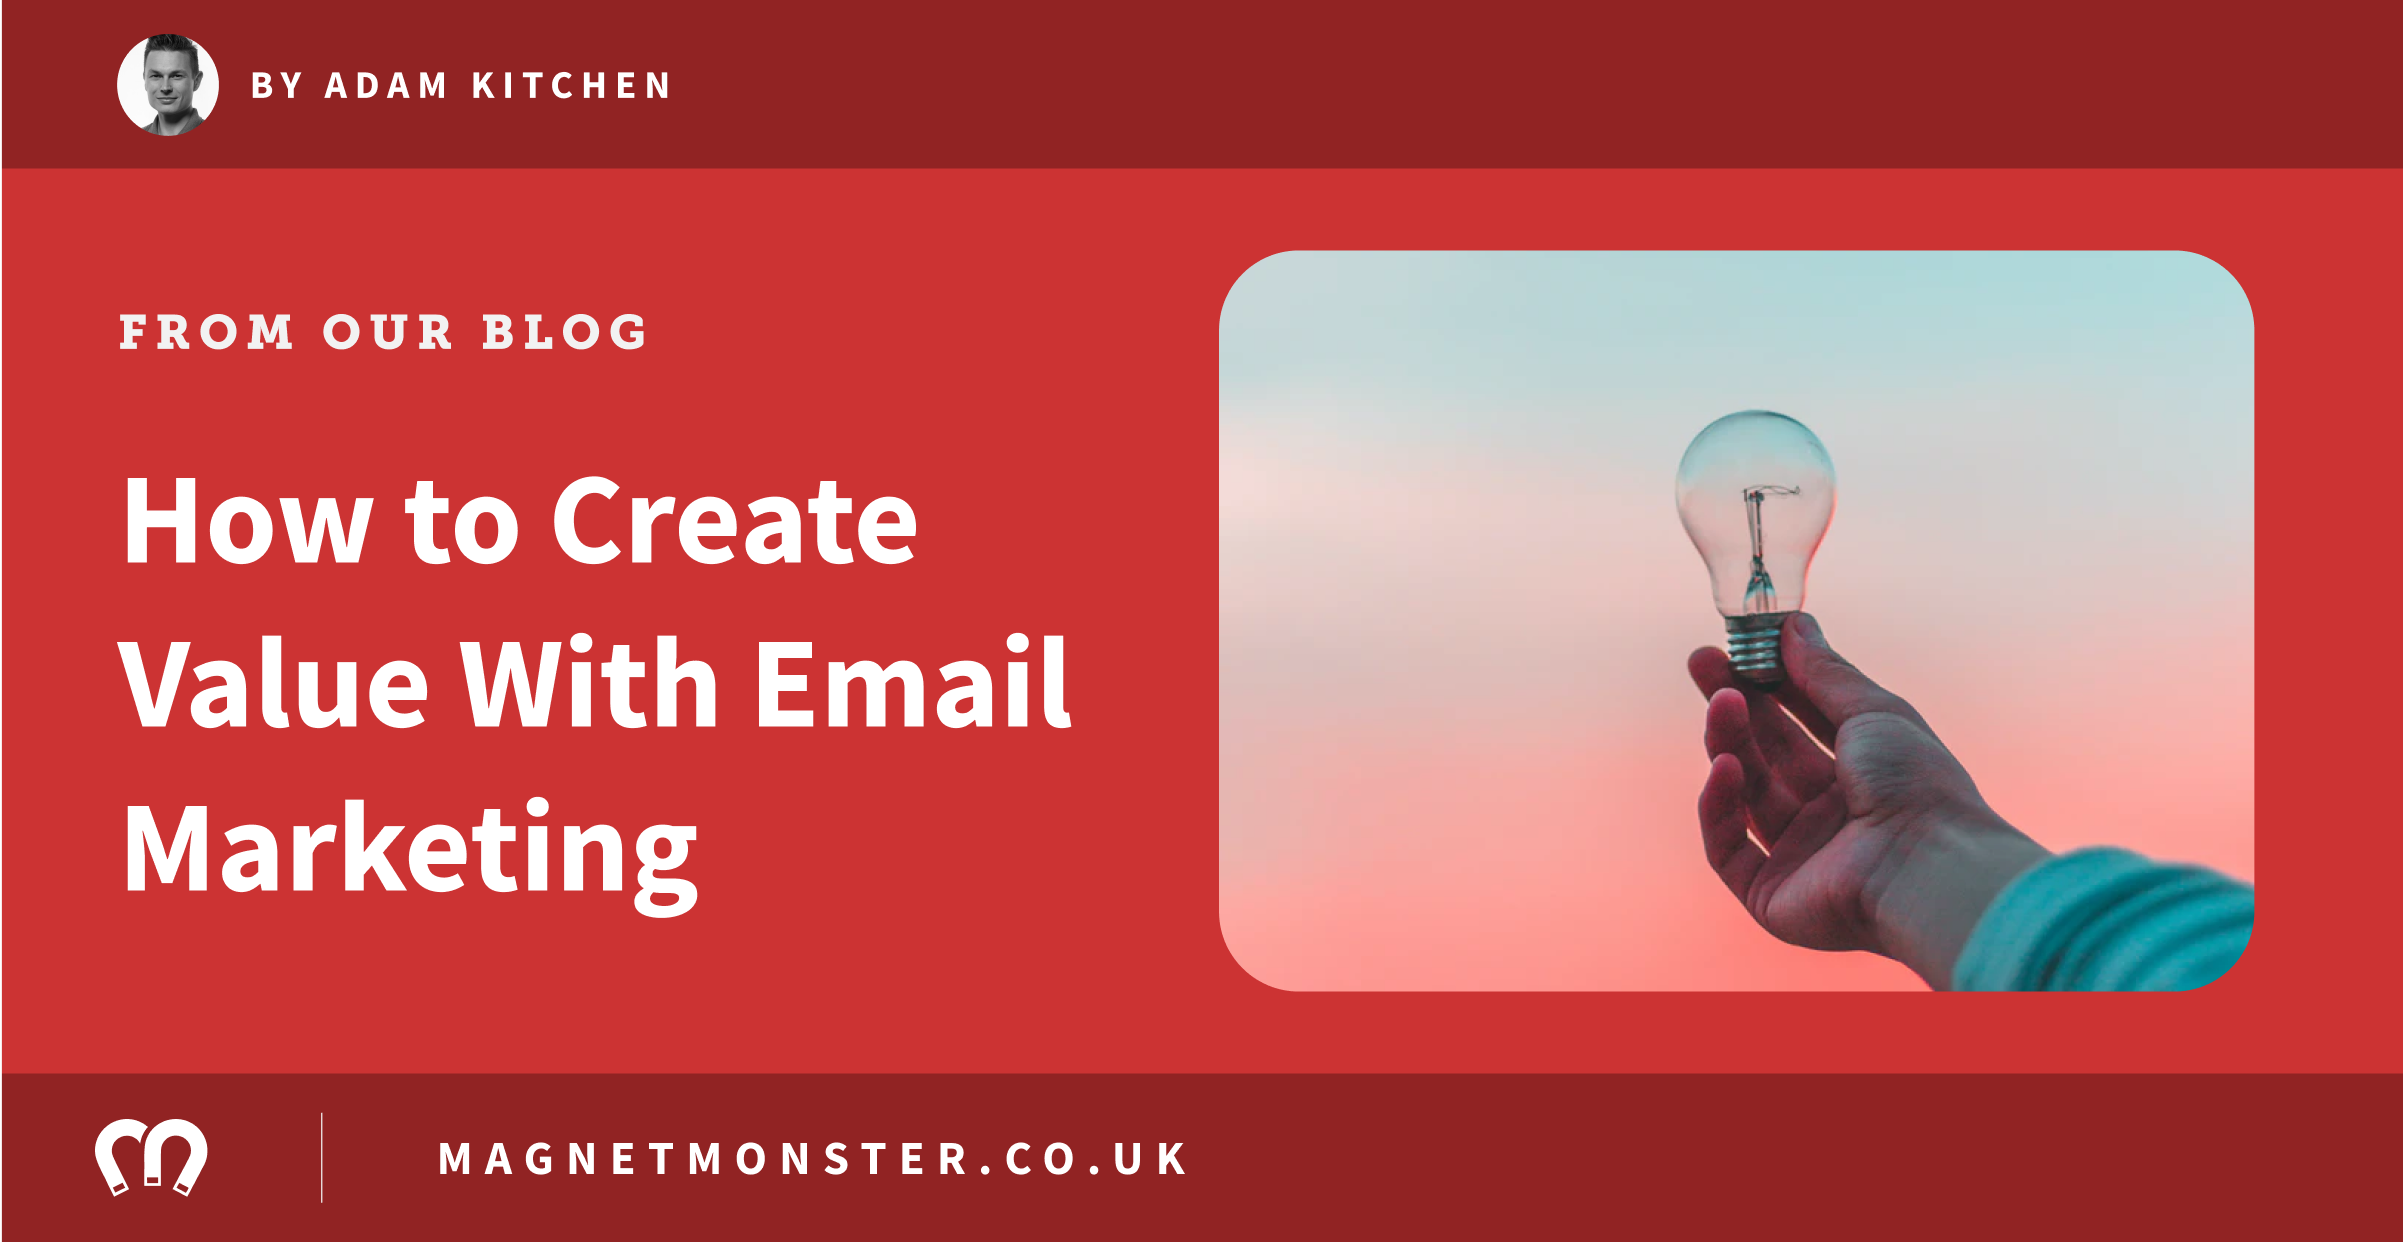 How to Create Value With Email Marketing